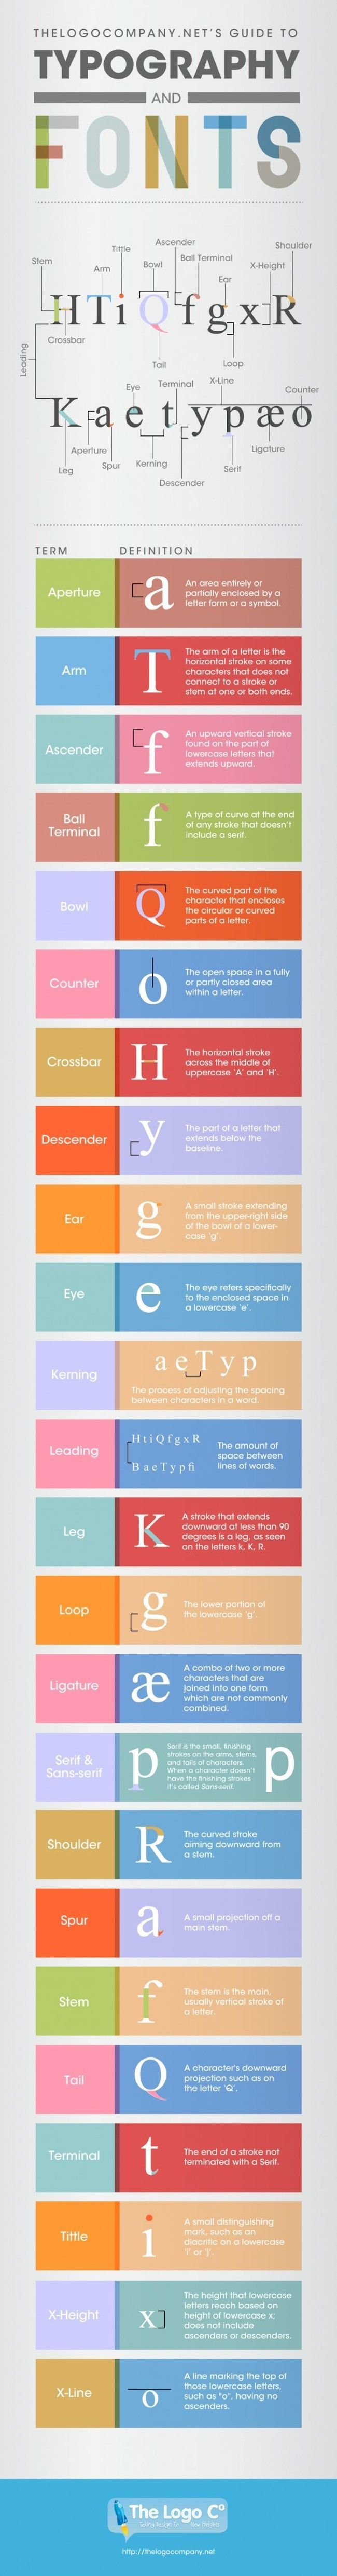 Typography and font knowledge every marketer should know in a handy infographic.